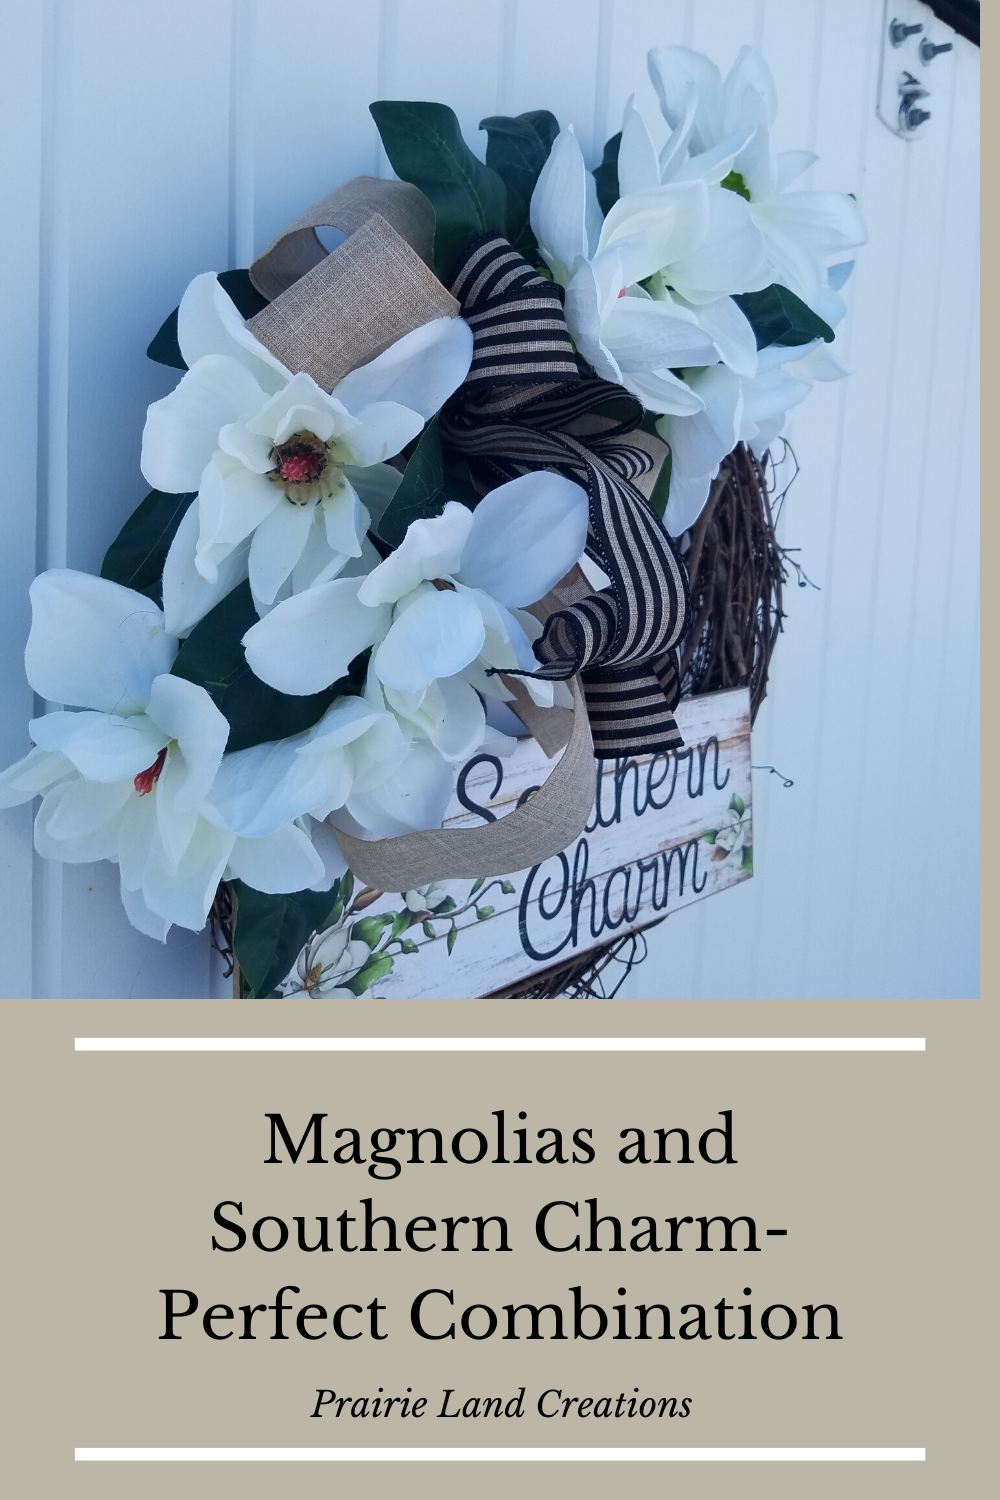 Photo of Magnolia wreath, summer wreath, Mother's Day gift, southern charm front door wreath, Home Sweet Magn